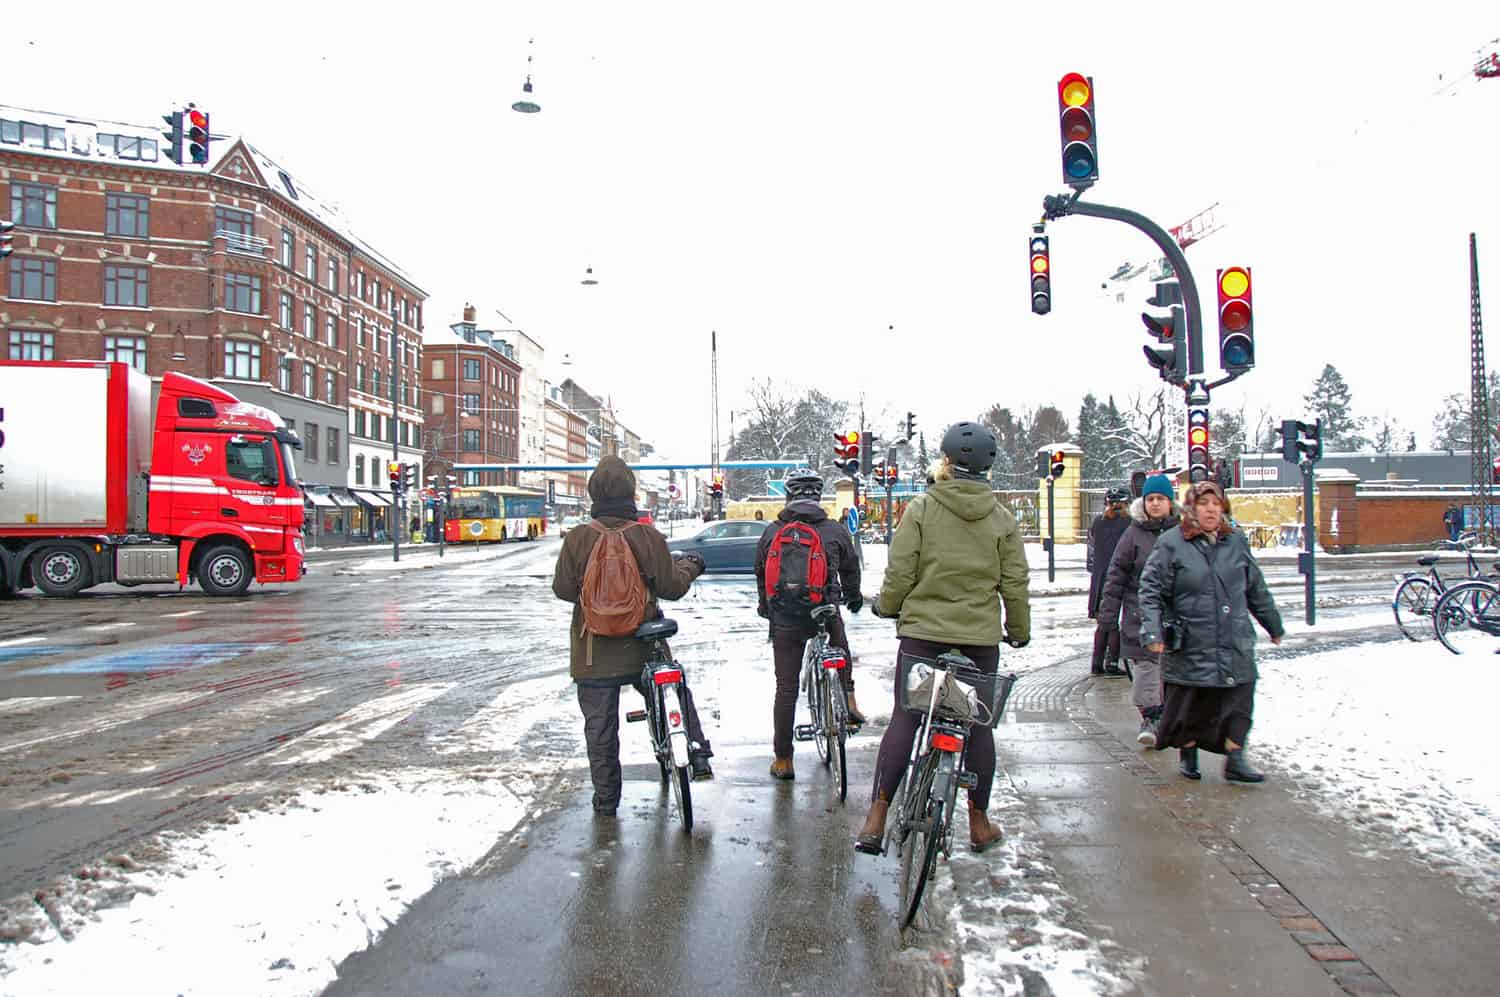 A snowy afternoon on Nørrebrogade in Copenhagen. Bike lights will turn green seconds before car lights to give the cyclists the first right of way. Cyclists feel safe riding in their designated lane.